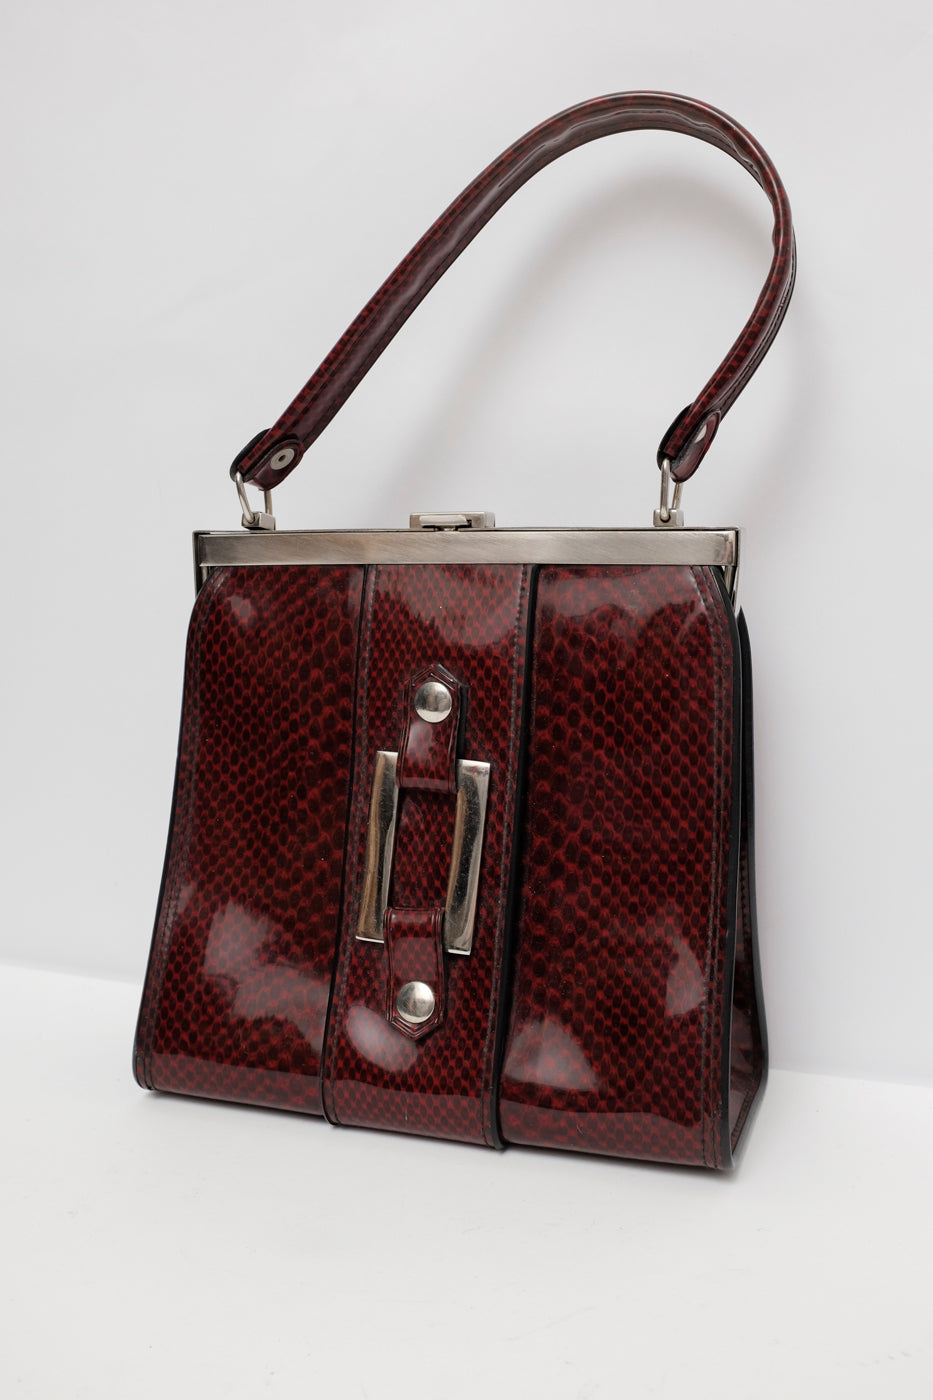 0005_SNAKE PATENT VINTAGE UNDER ARM BAG